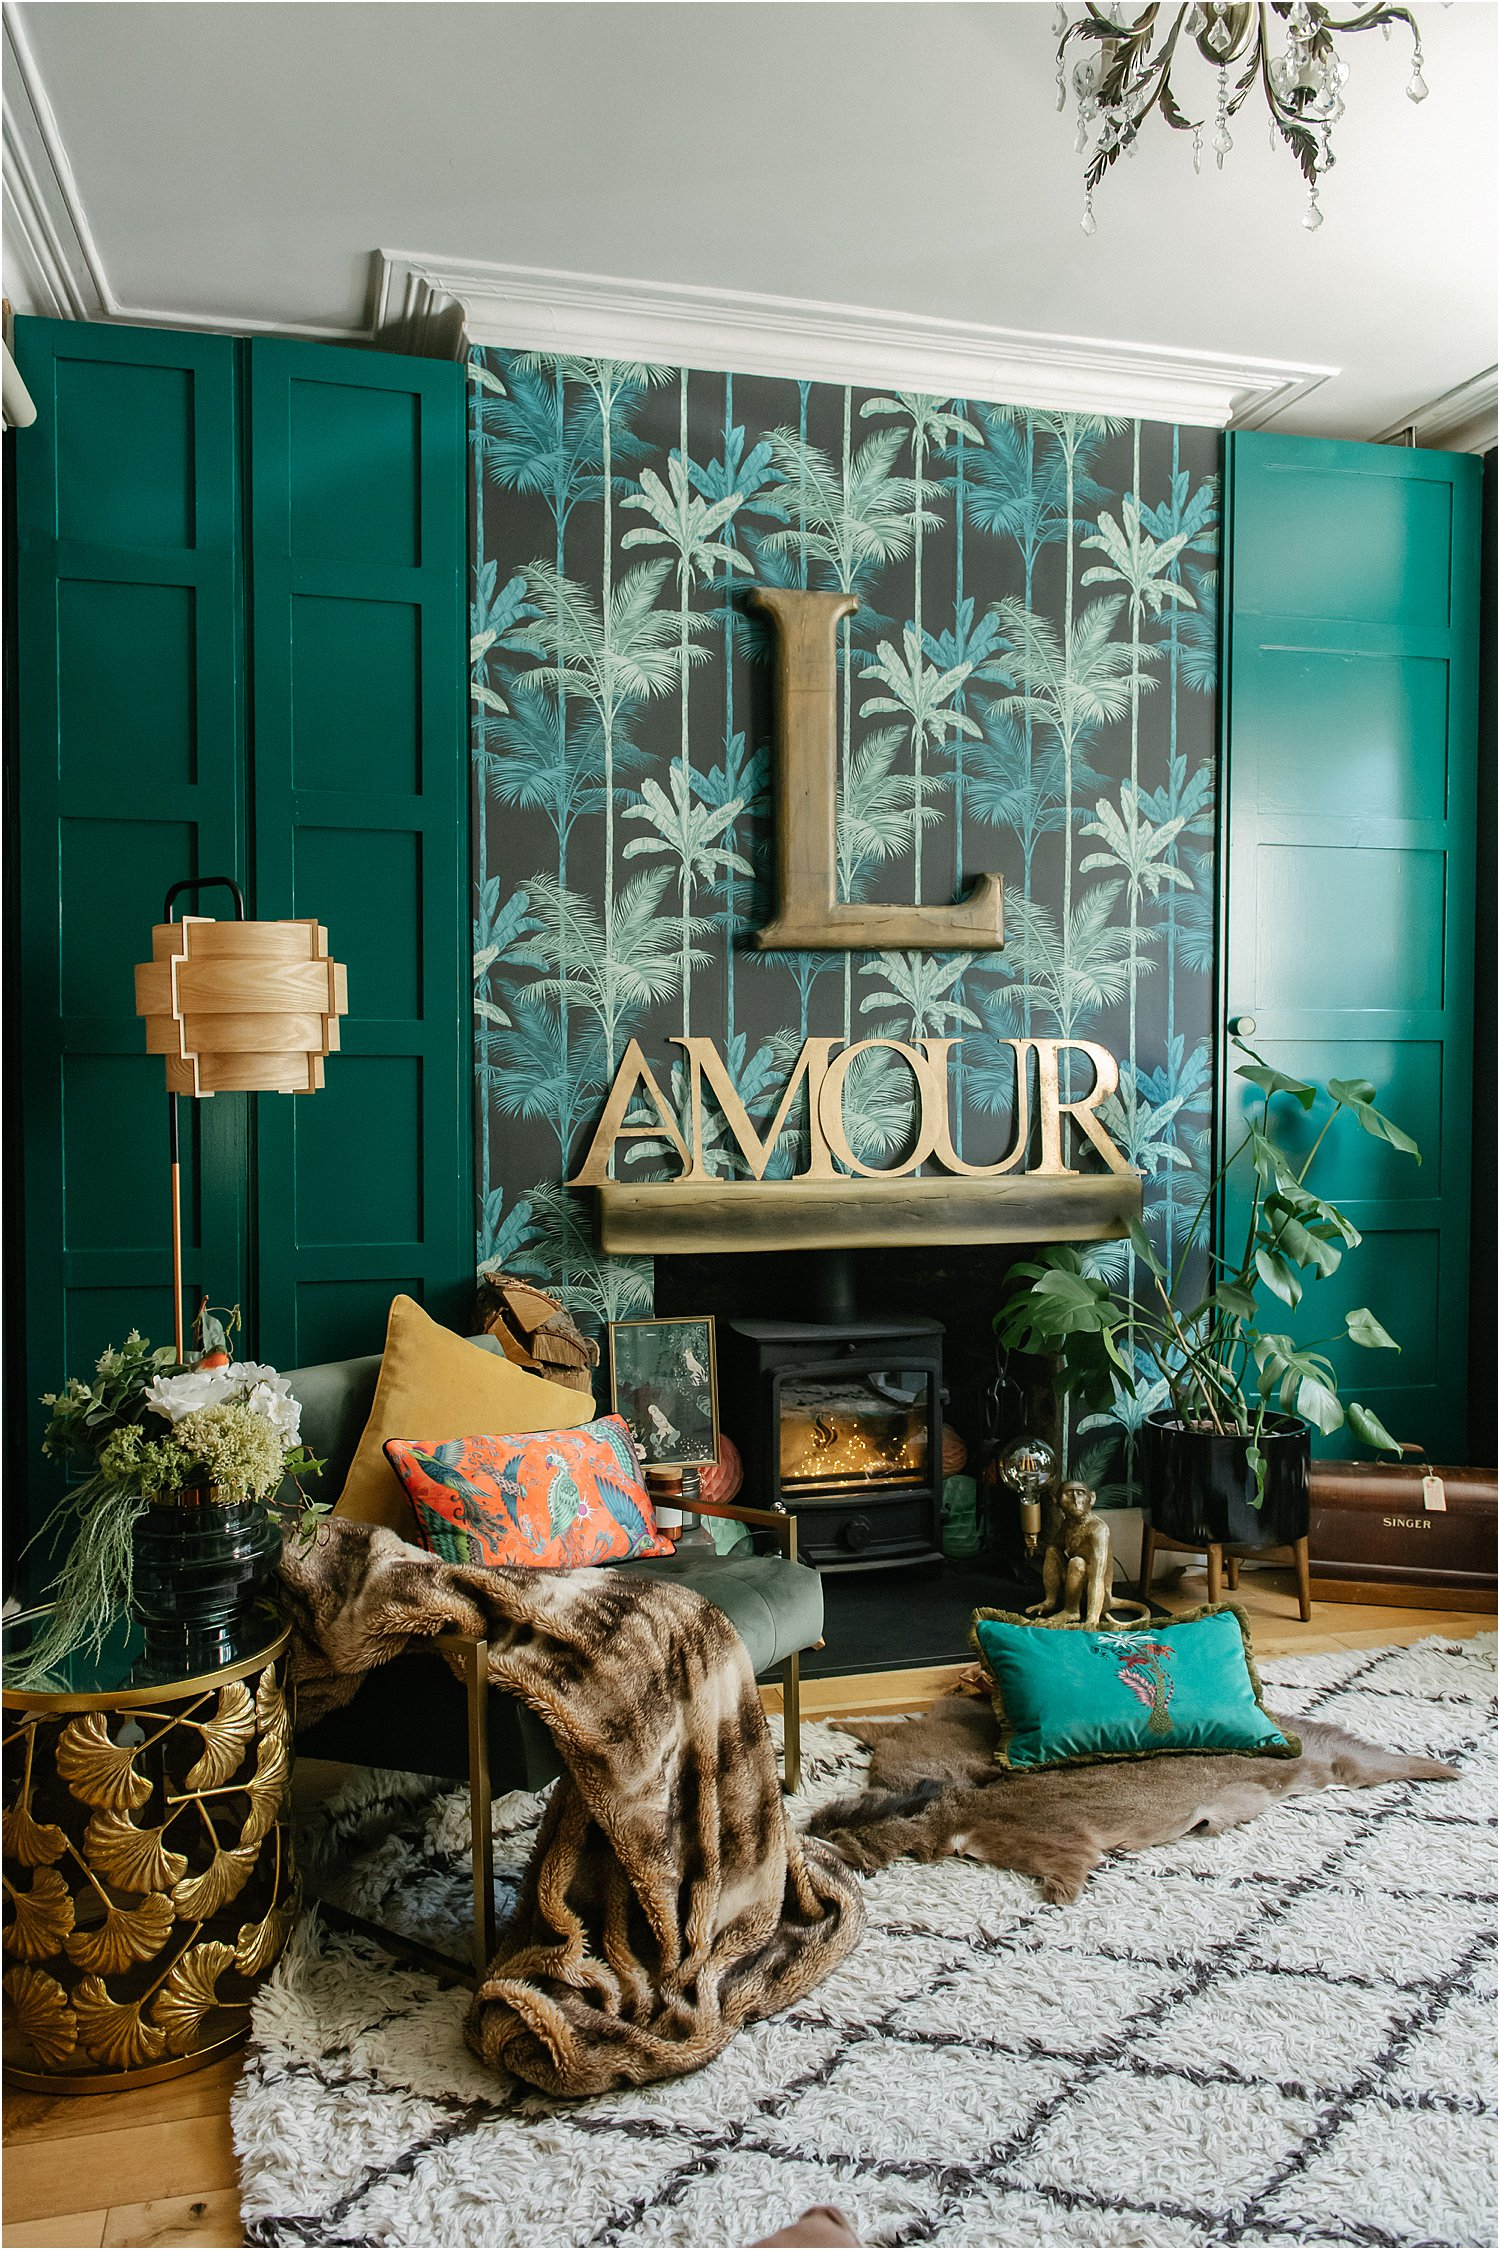 3-reasons-to-try-wallpaper-dark-green-room-maximalist-eclectic-lily-sawyer-layered-home-interiors